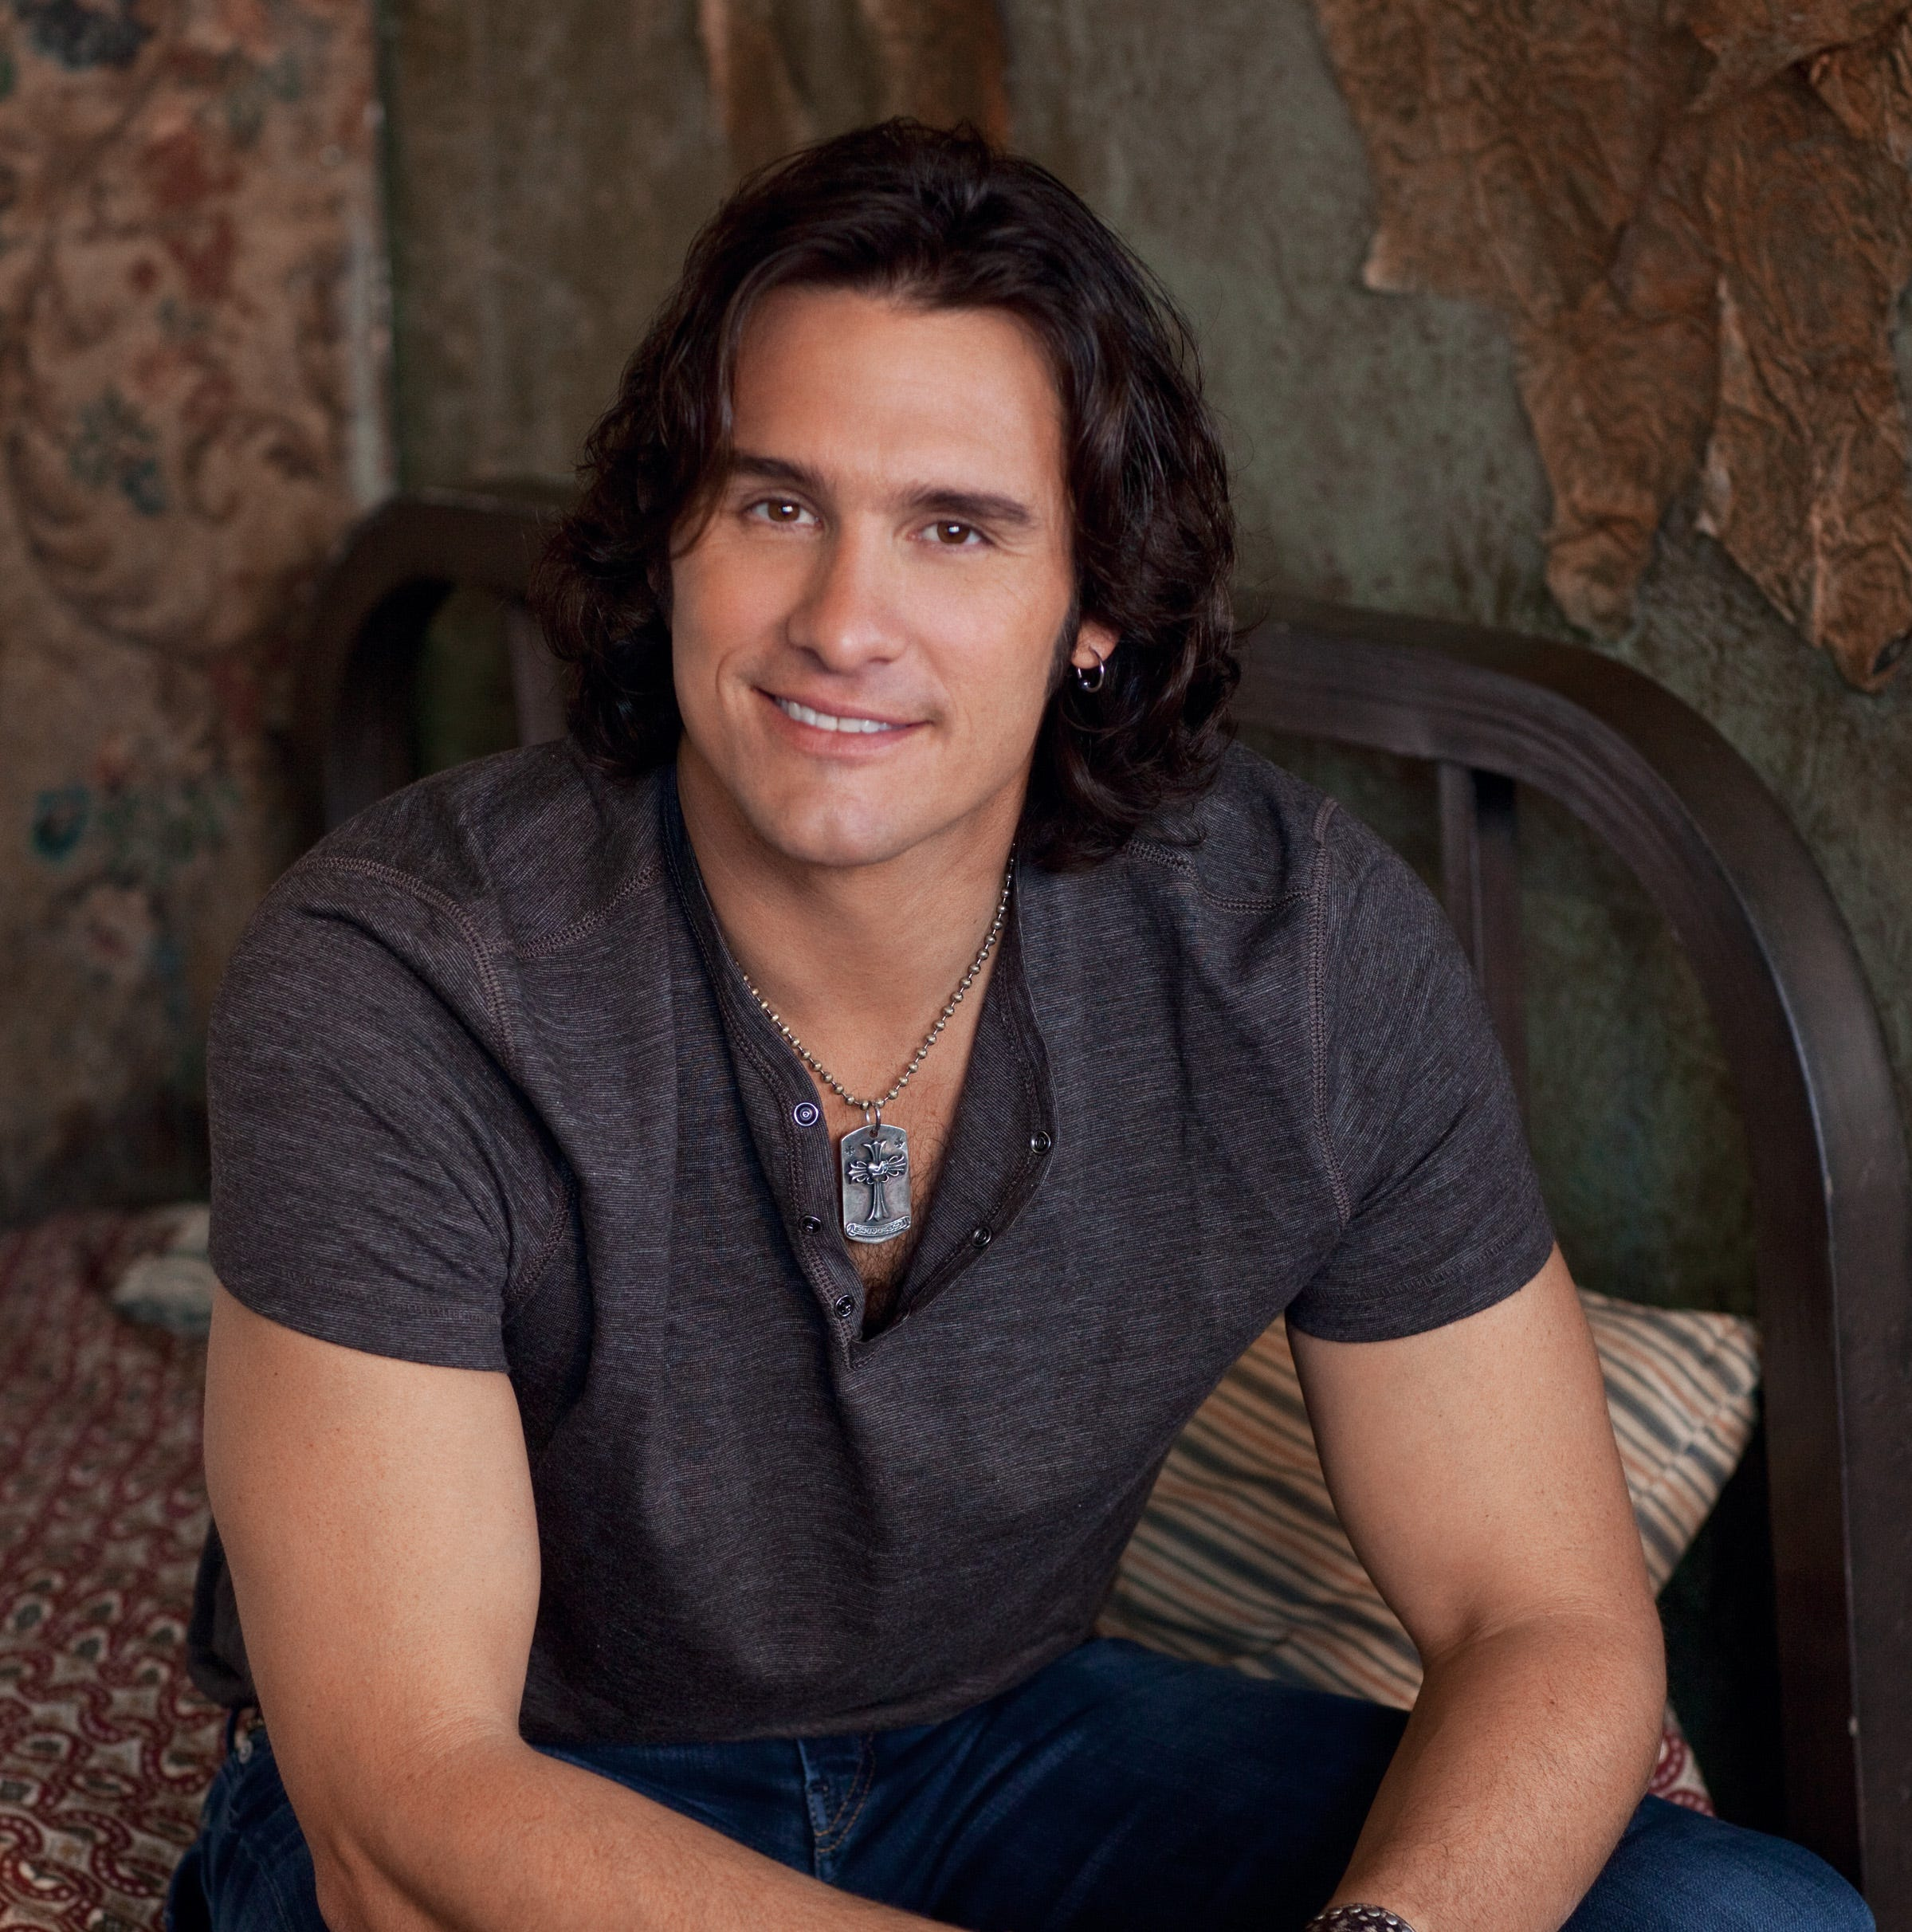 Country music singer Joe Nichols to headline All American Country Music Festival